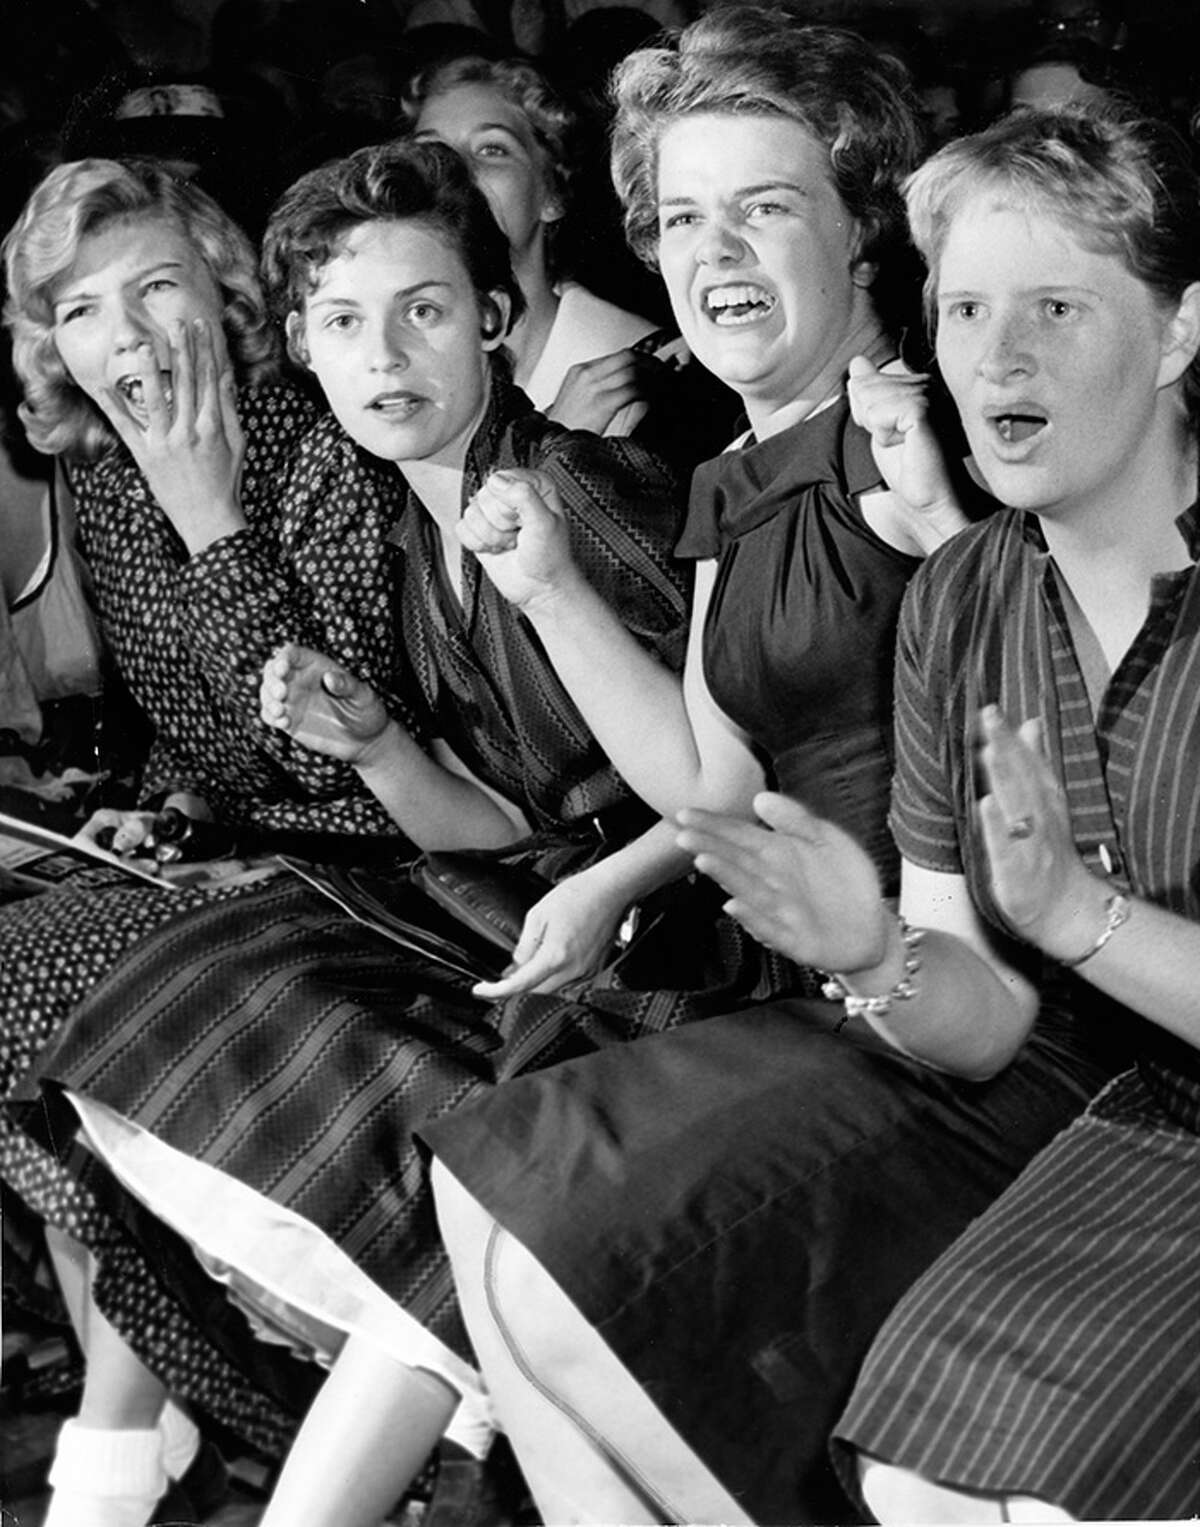 Fans watch Elvis Presley perform at the Sam Houston Coliseum in Houston.  October 13, 1956.